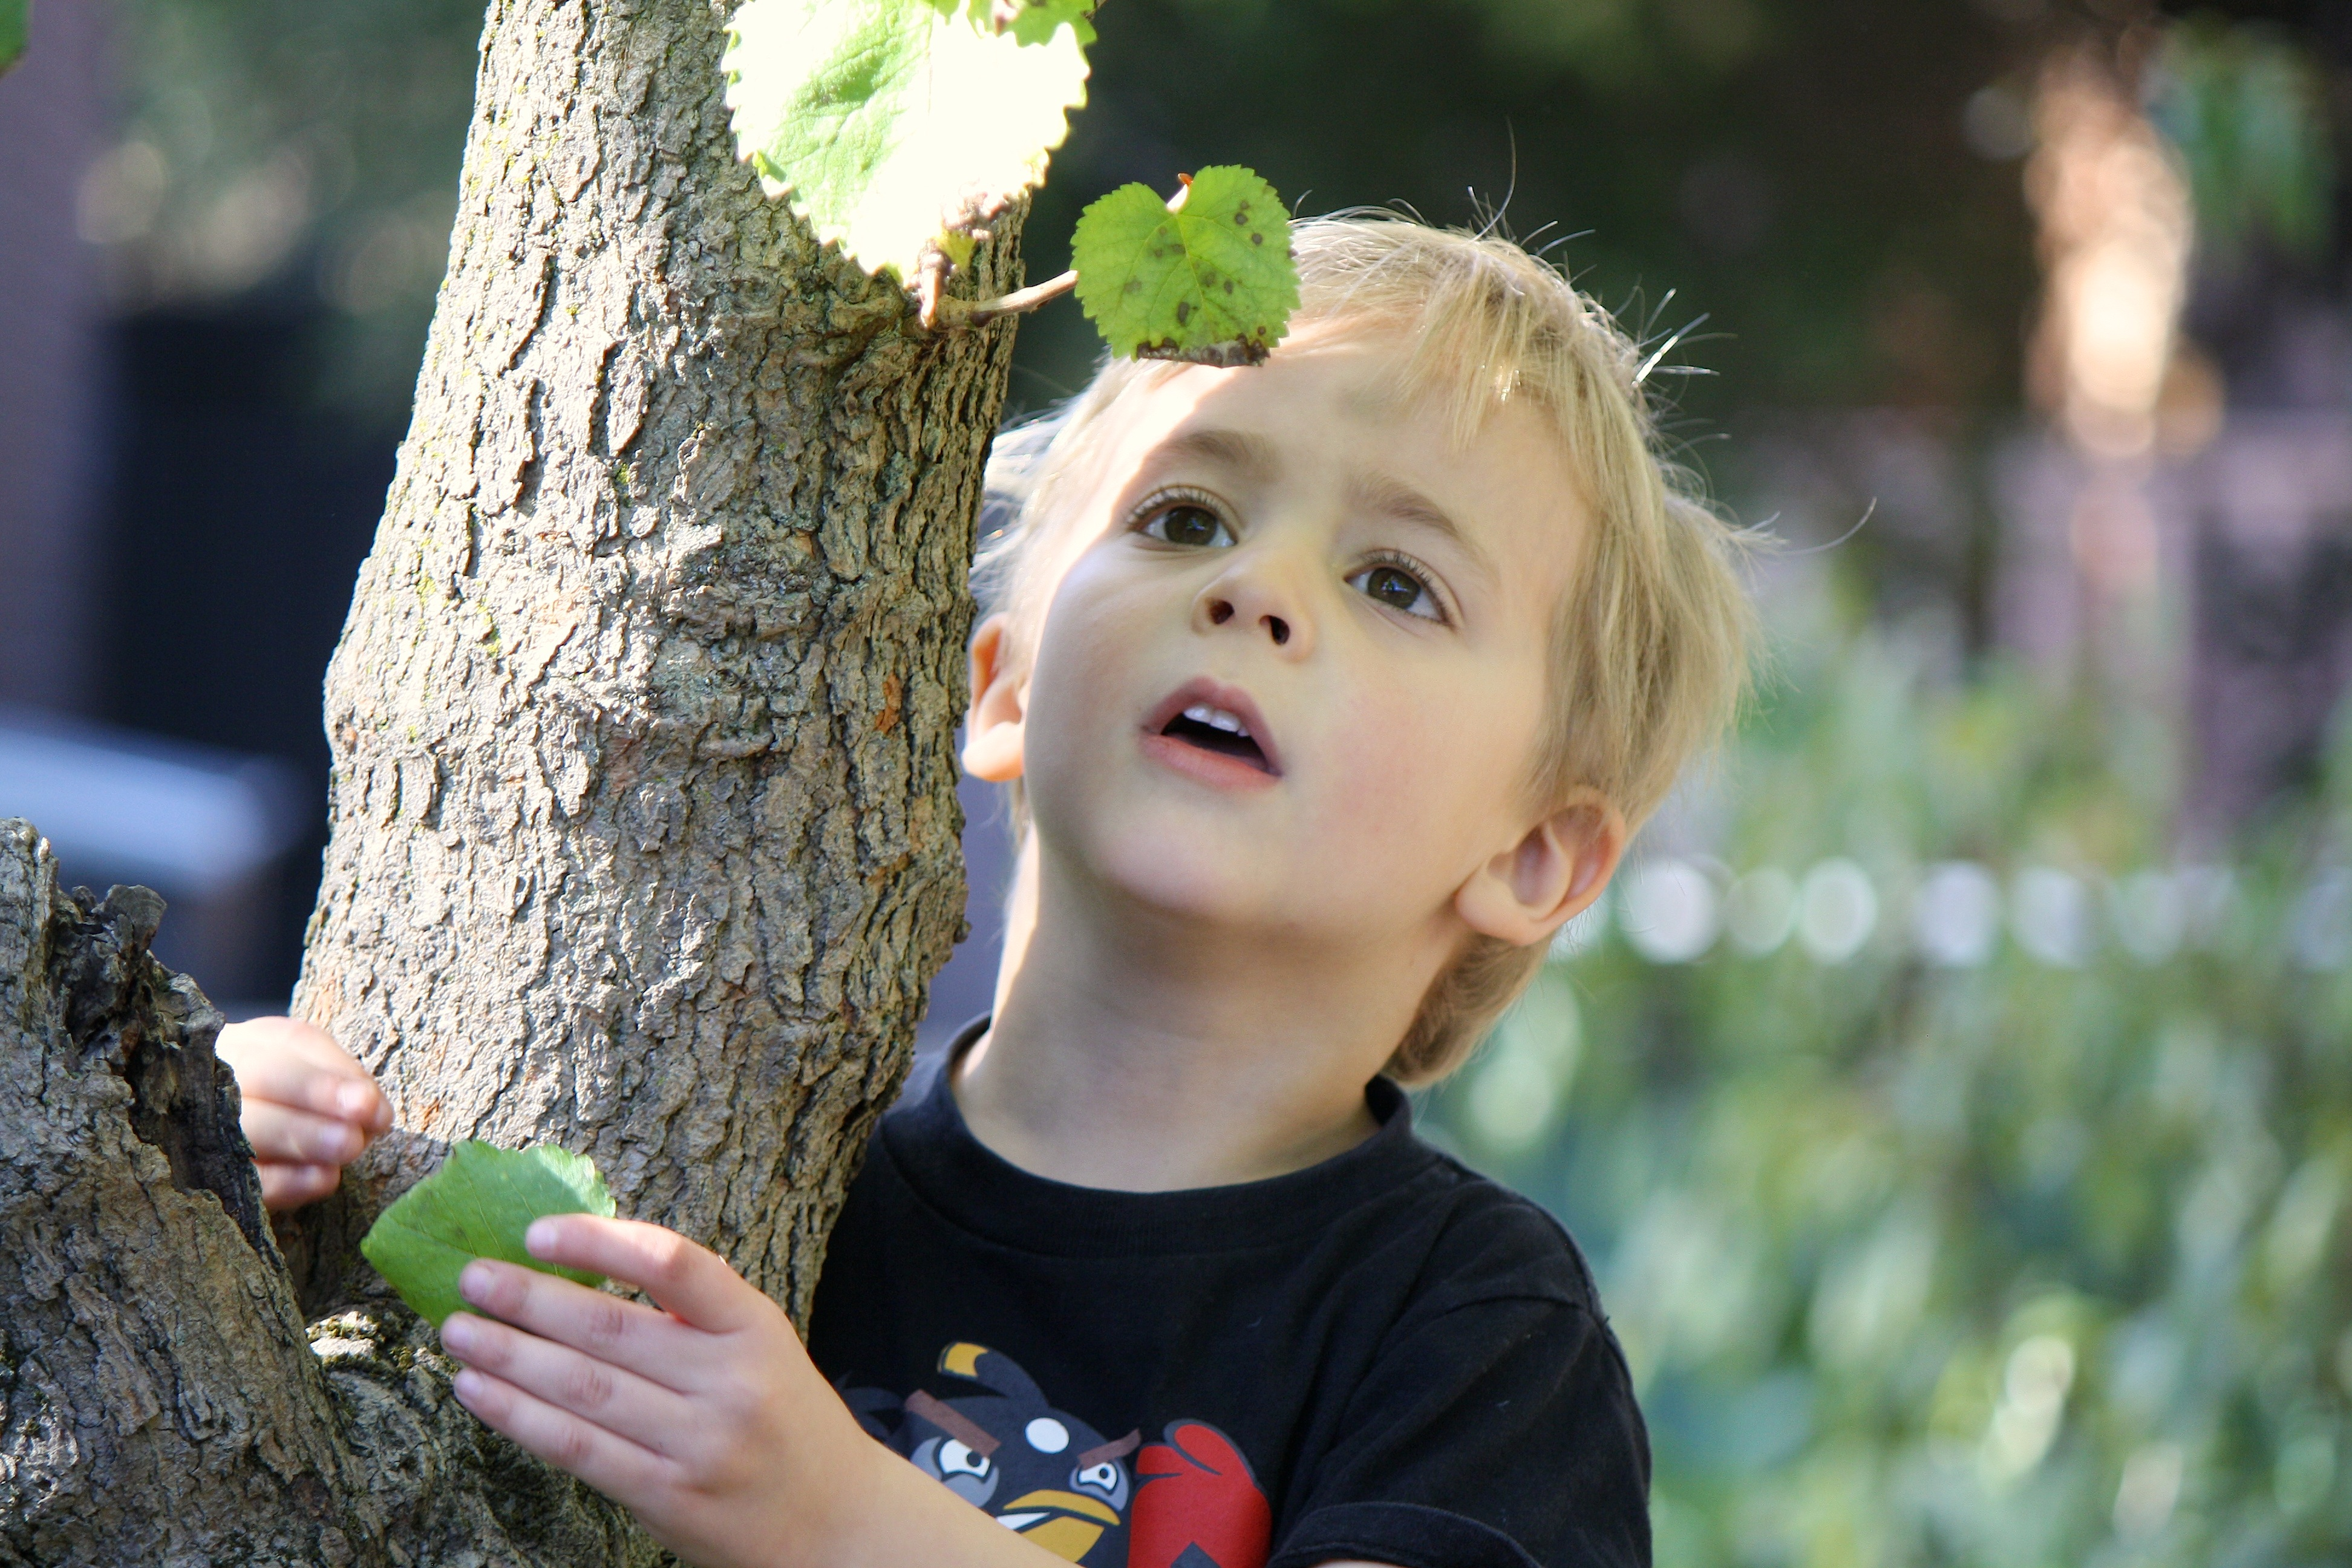 Young boy in a tree, studying the bark and leaves